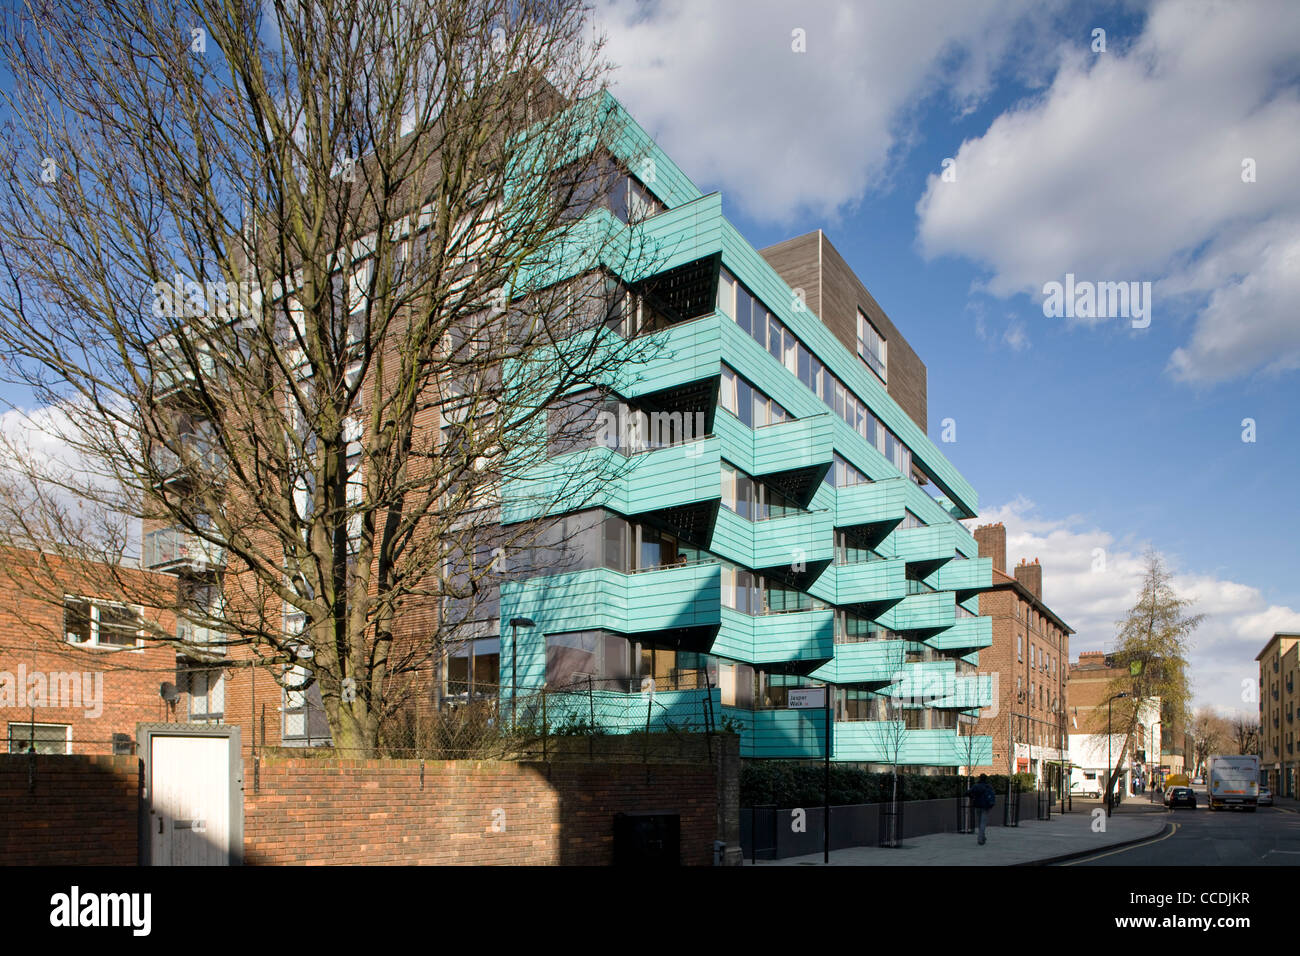 The Scheme Is A Combination Of Sales, Keyworker, Affordable And Shared Ownership Rental Apartments.  The Density Stock Photo